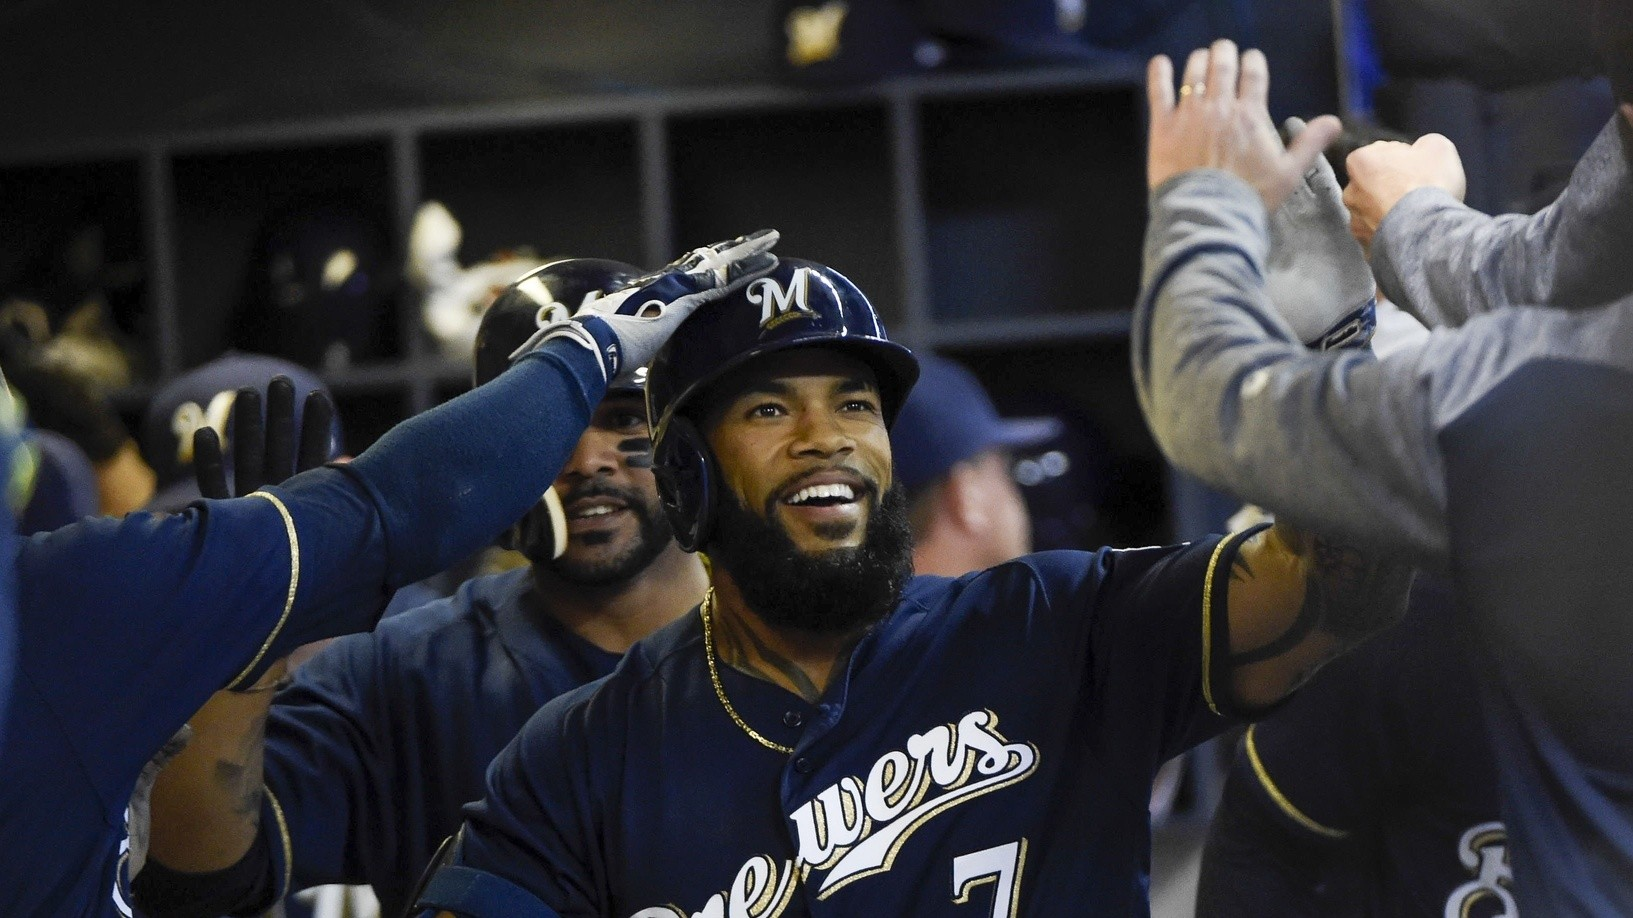 Eric Thames Has Plenty Of Urine: Yakkin' About Baseball